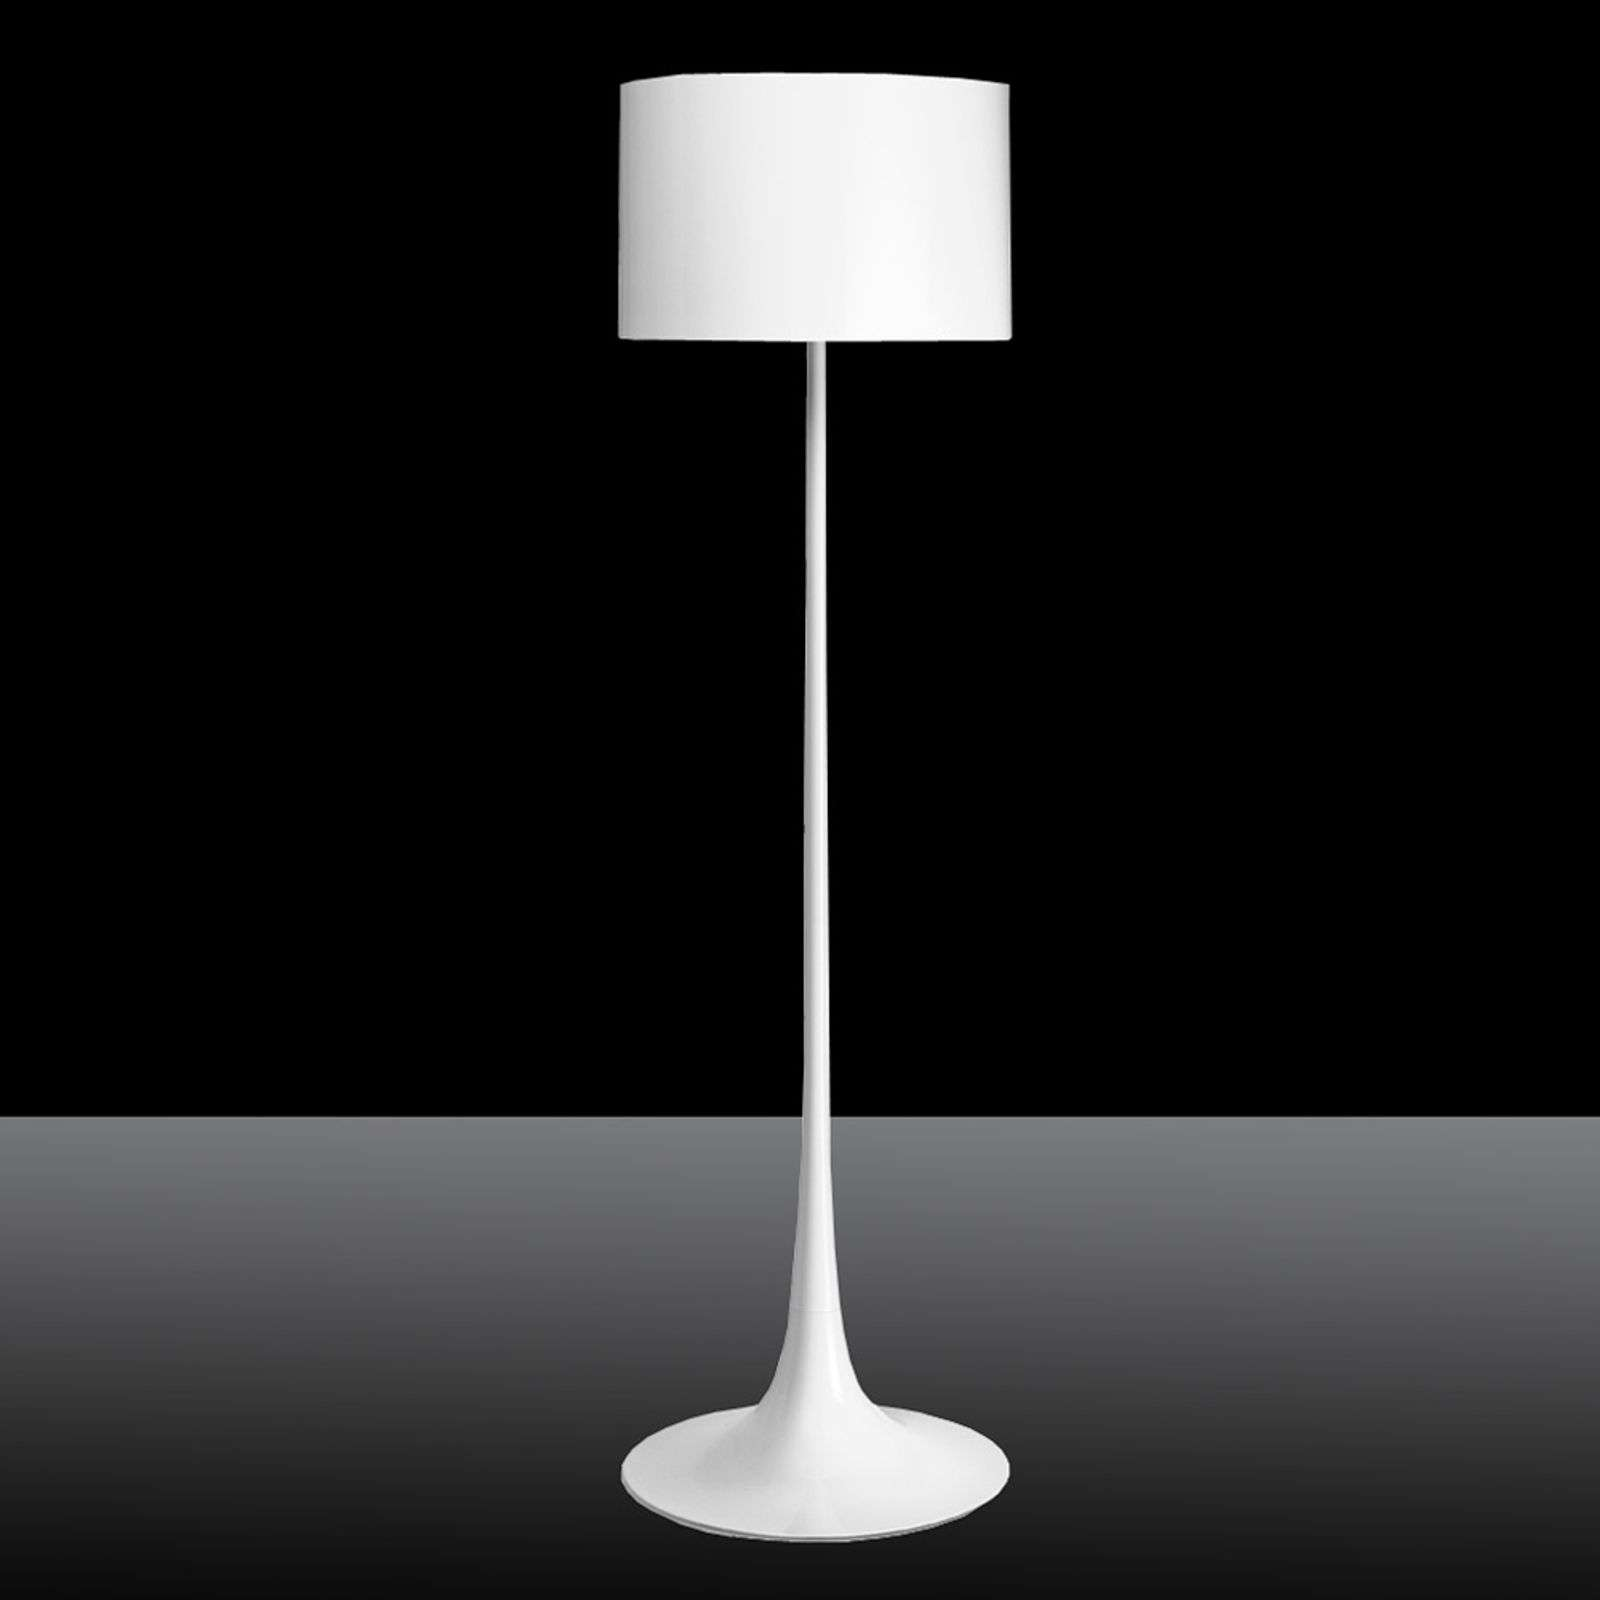 Lampadaire Spun Light F by FLOS blanc